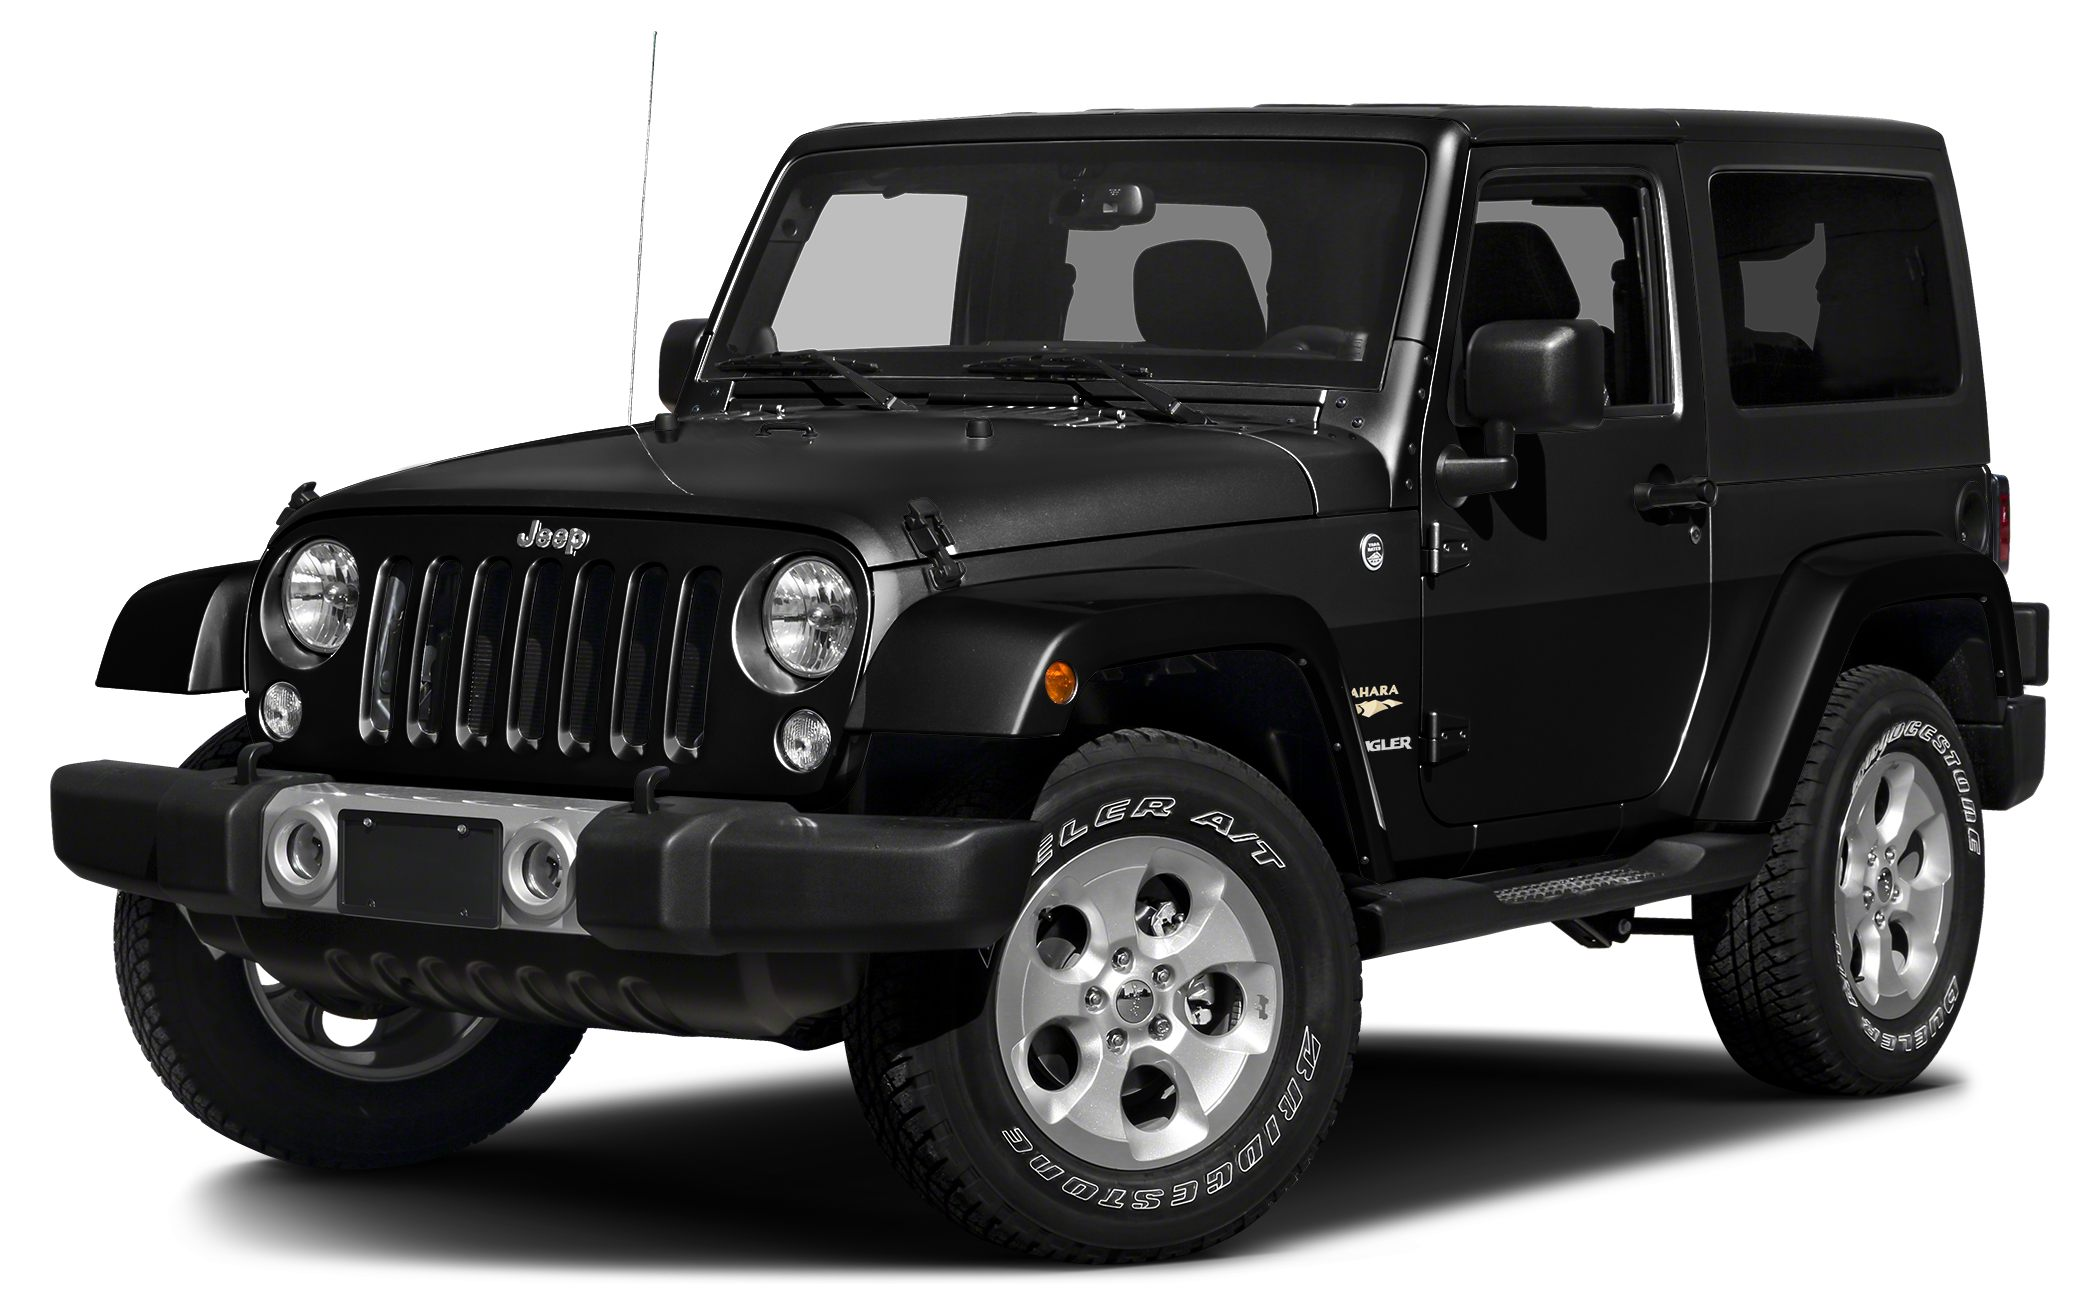 2016 Jeep Wrangler Sahara 2016 Jeep Wrangler Sahara in Black and One Year Free Maintanence Dual T